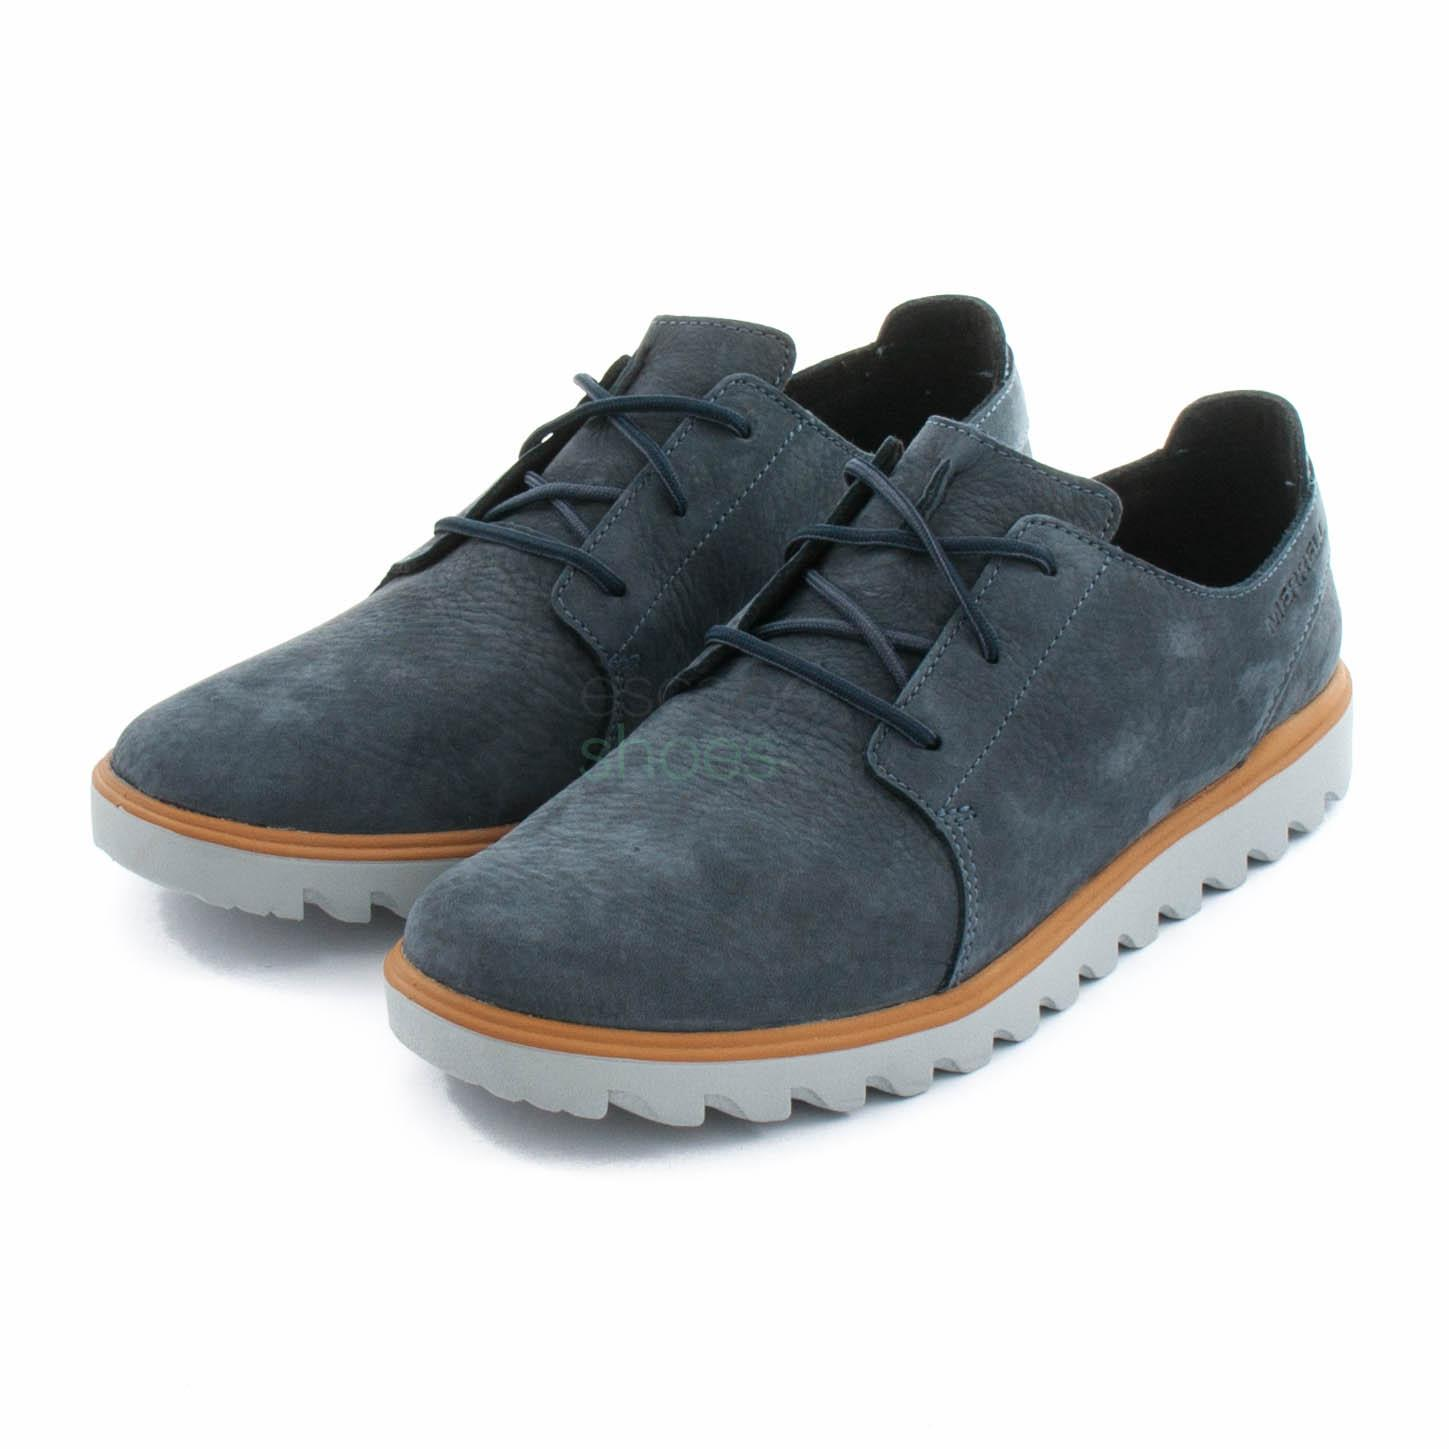 4857a5ea06dc3 Buy your Sneakers MERRELL Downtown Sunsill Lace Slate J94439 here ...